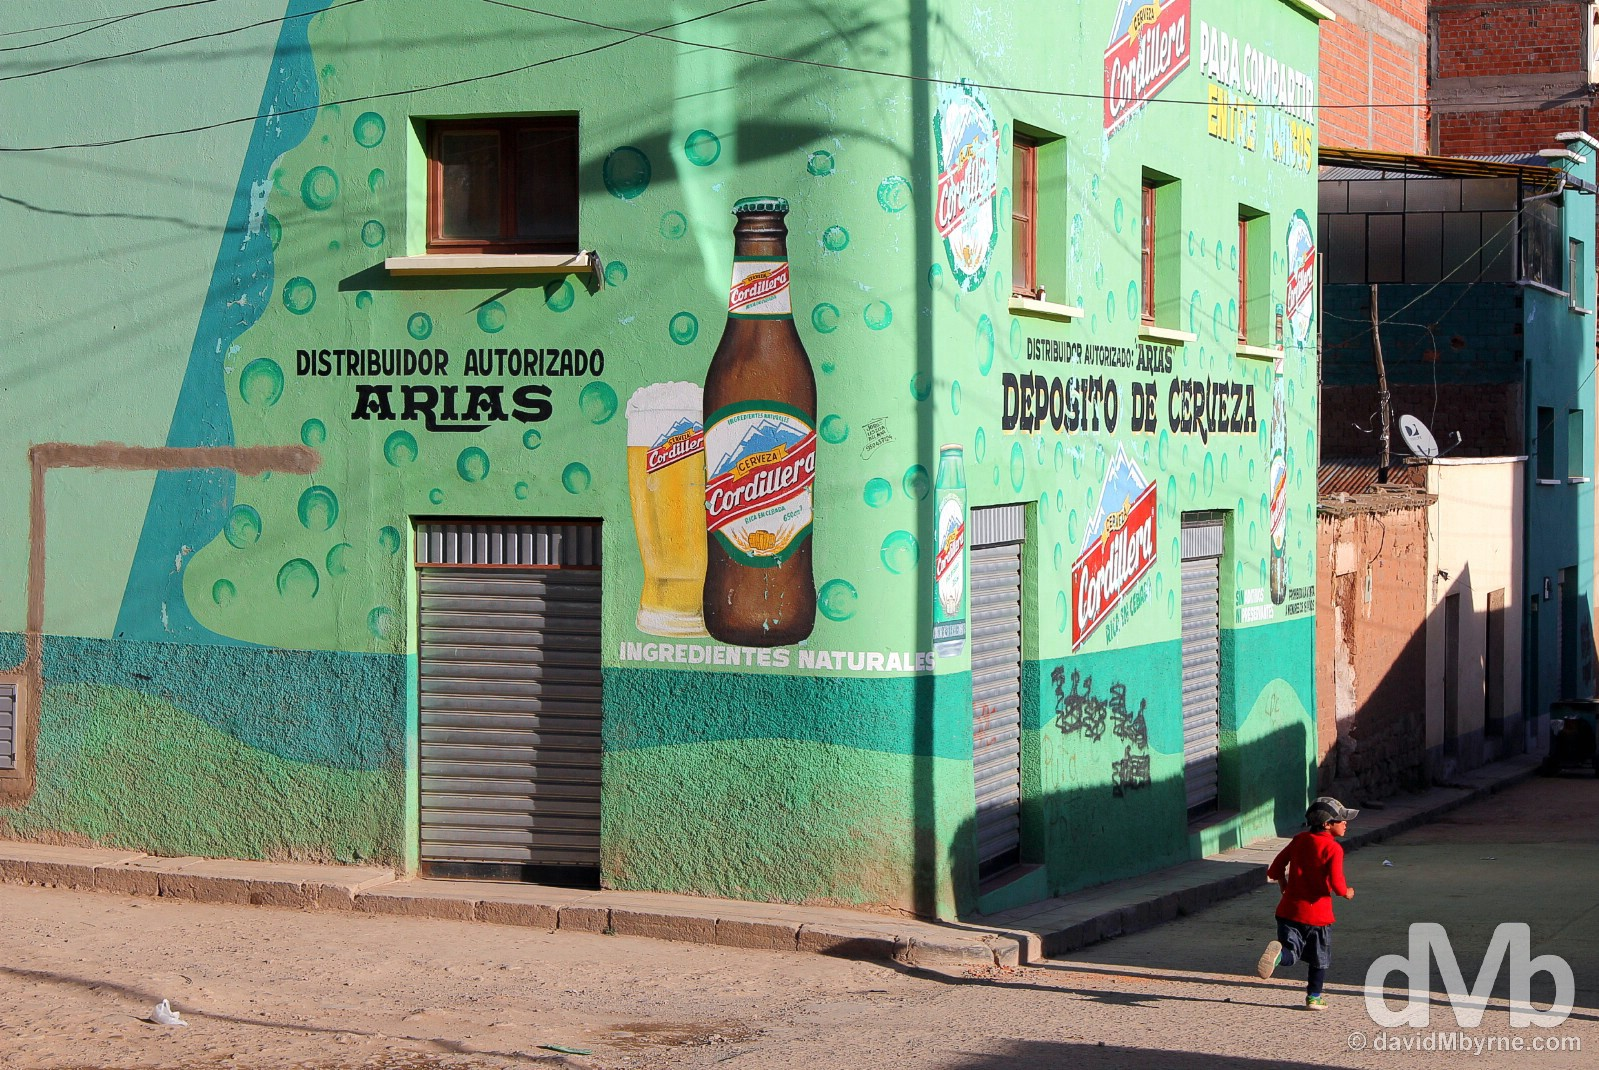 On the streets of Copacabana, Bolivia. August 23, 2015.